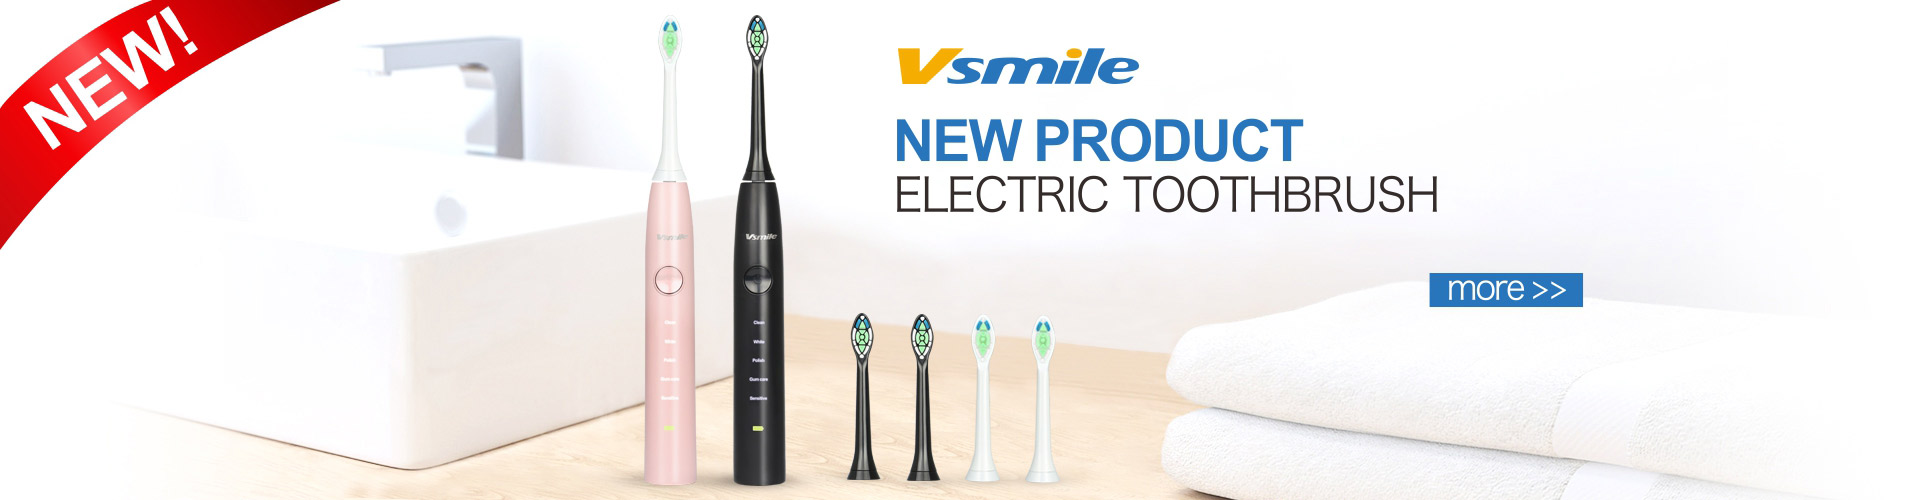 vsmile electric toothbrush